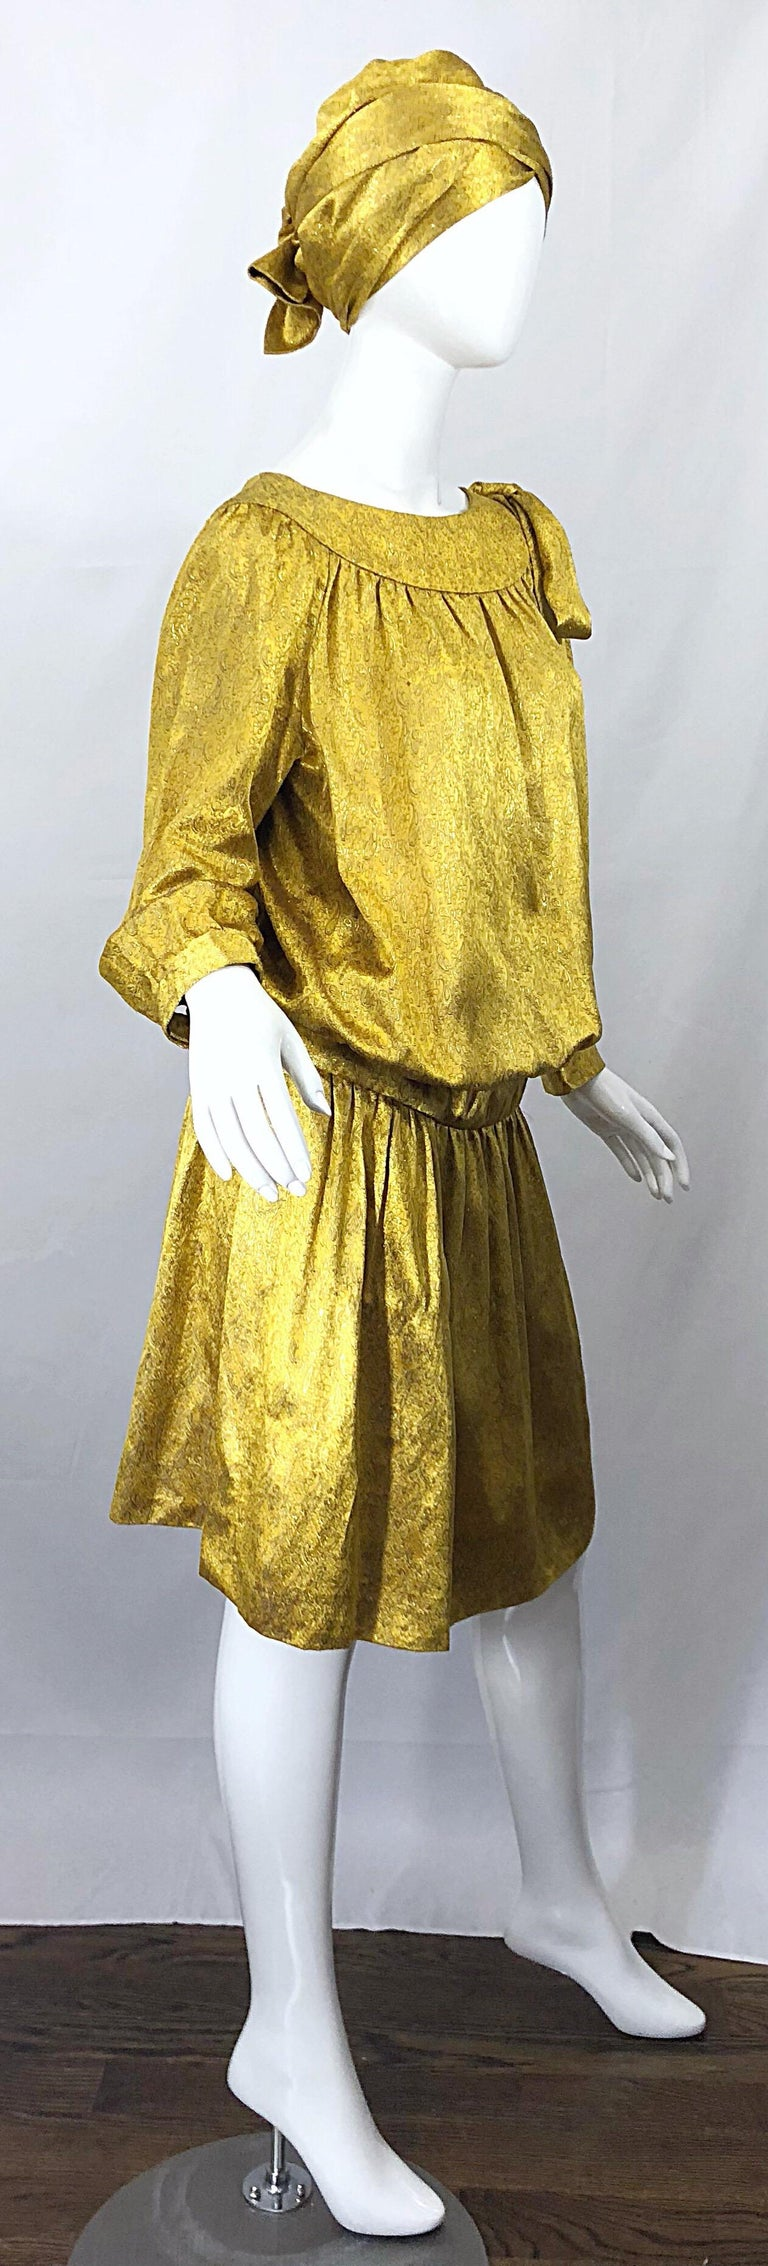 Vintage Brioni Yellow + Gold Silk 1920s Style Drop Waist Dress + Turban Sash For Sale 7